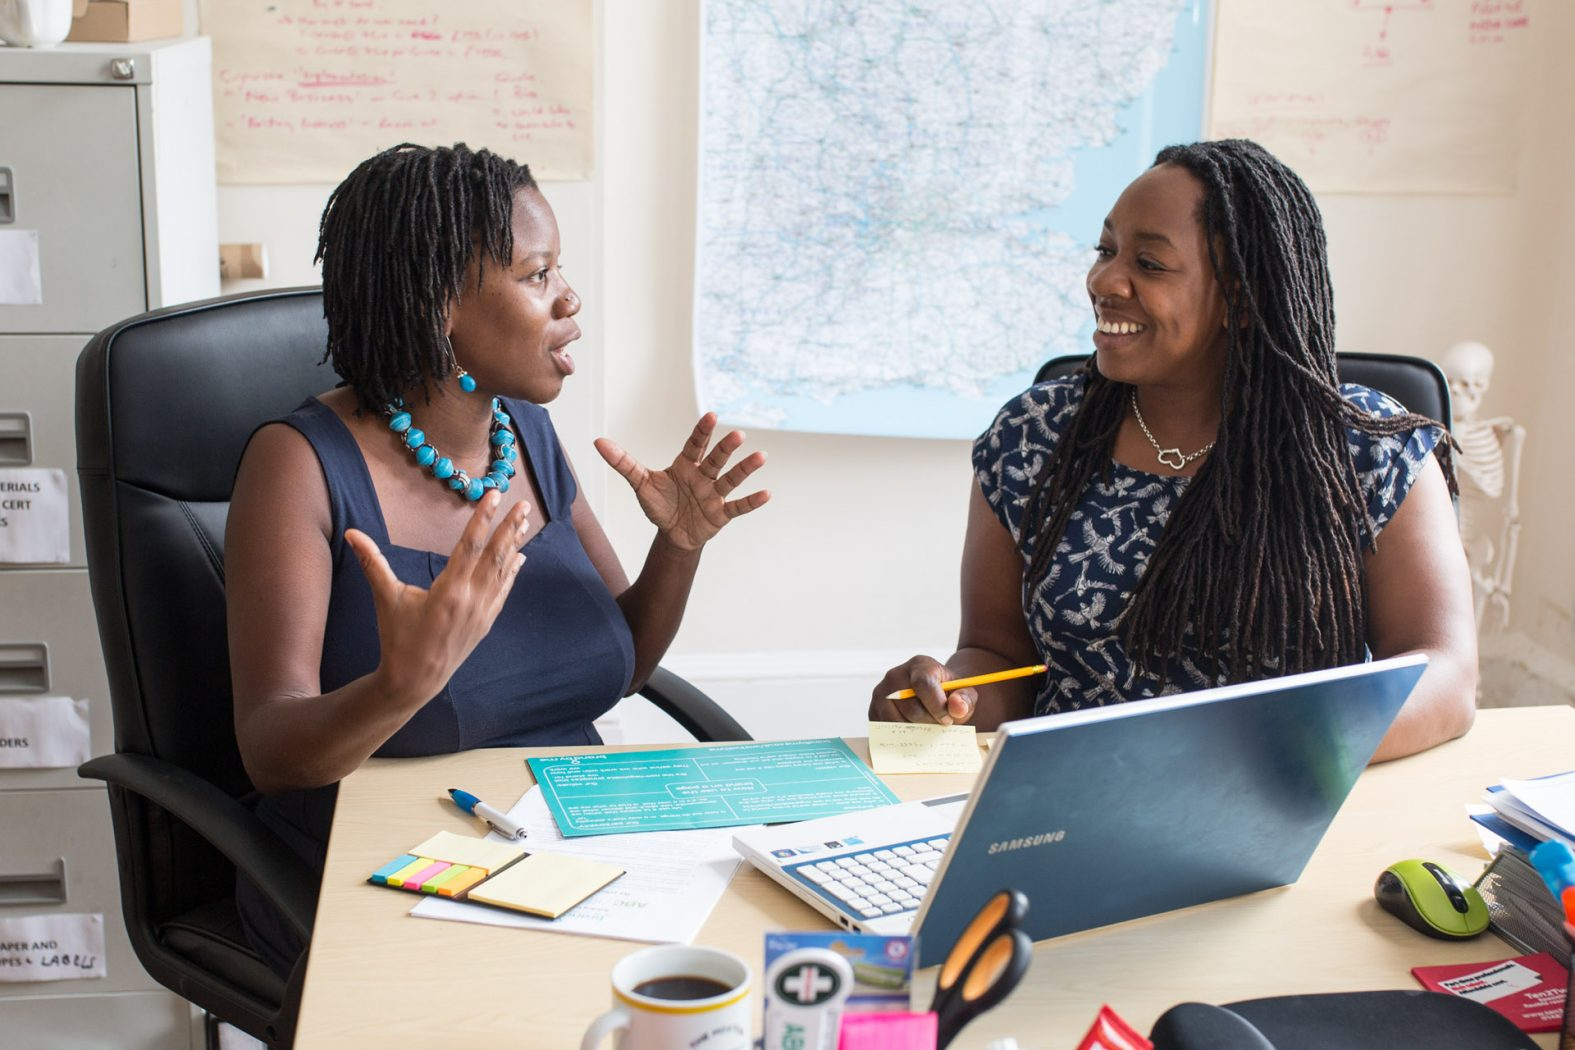 5 Big Brand Tips For Small Charities